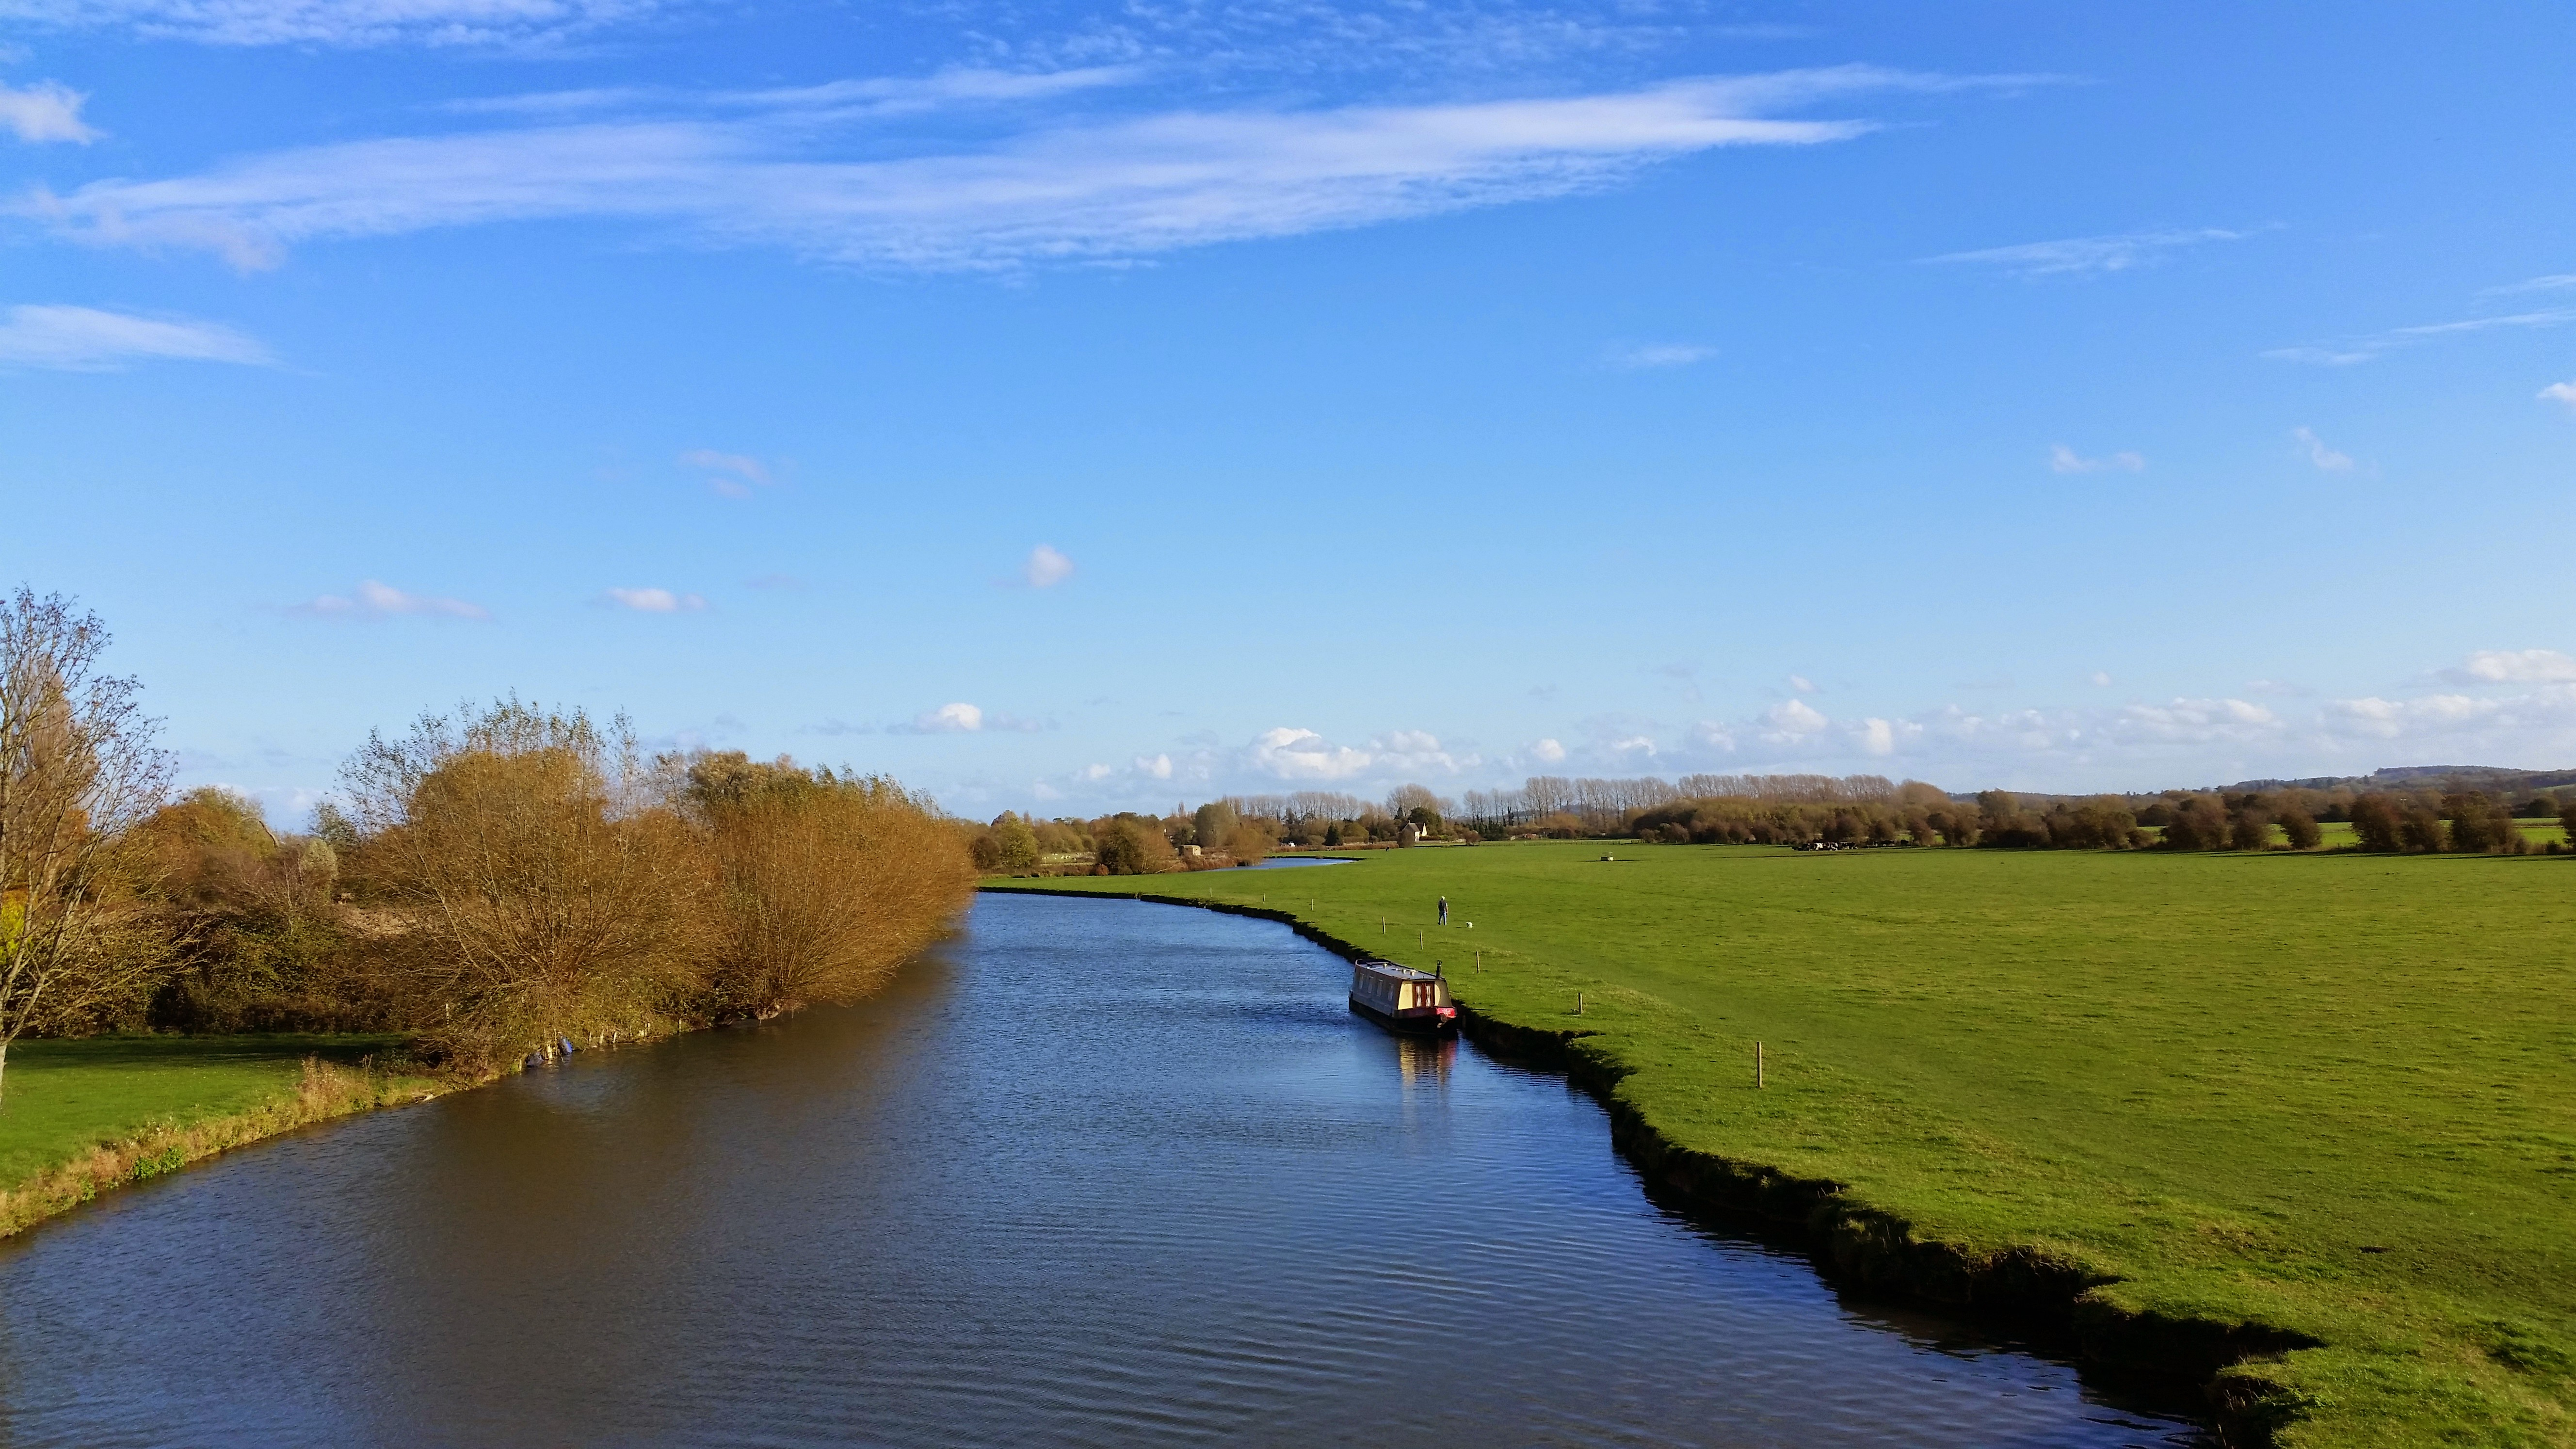 The river Thames at Lechlade